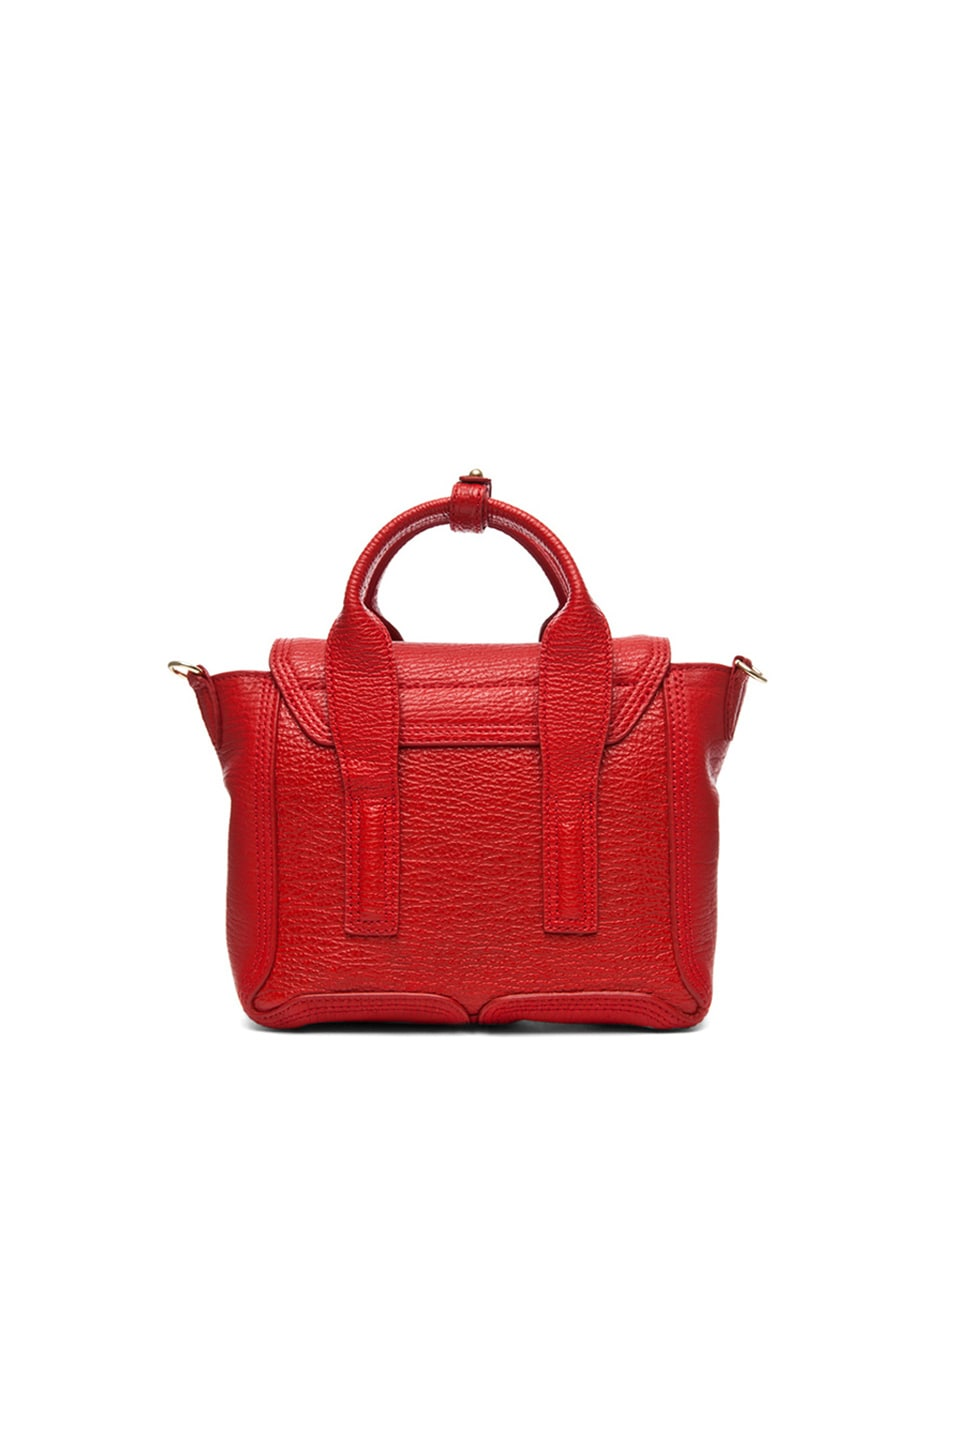 Image 3 of 3.1 phillip lim Mini Pashli Satchel in Red